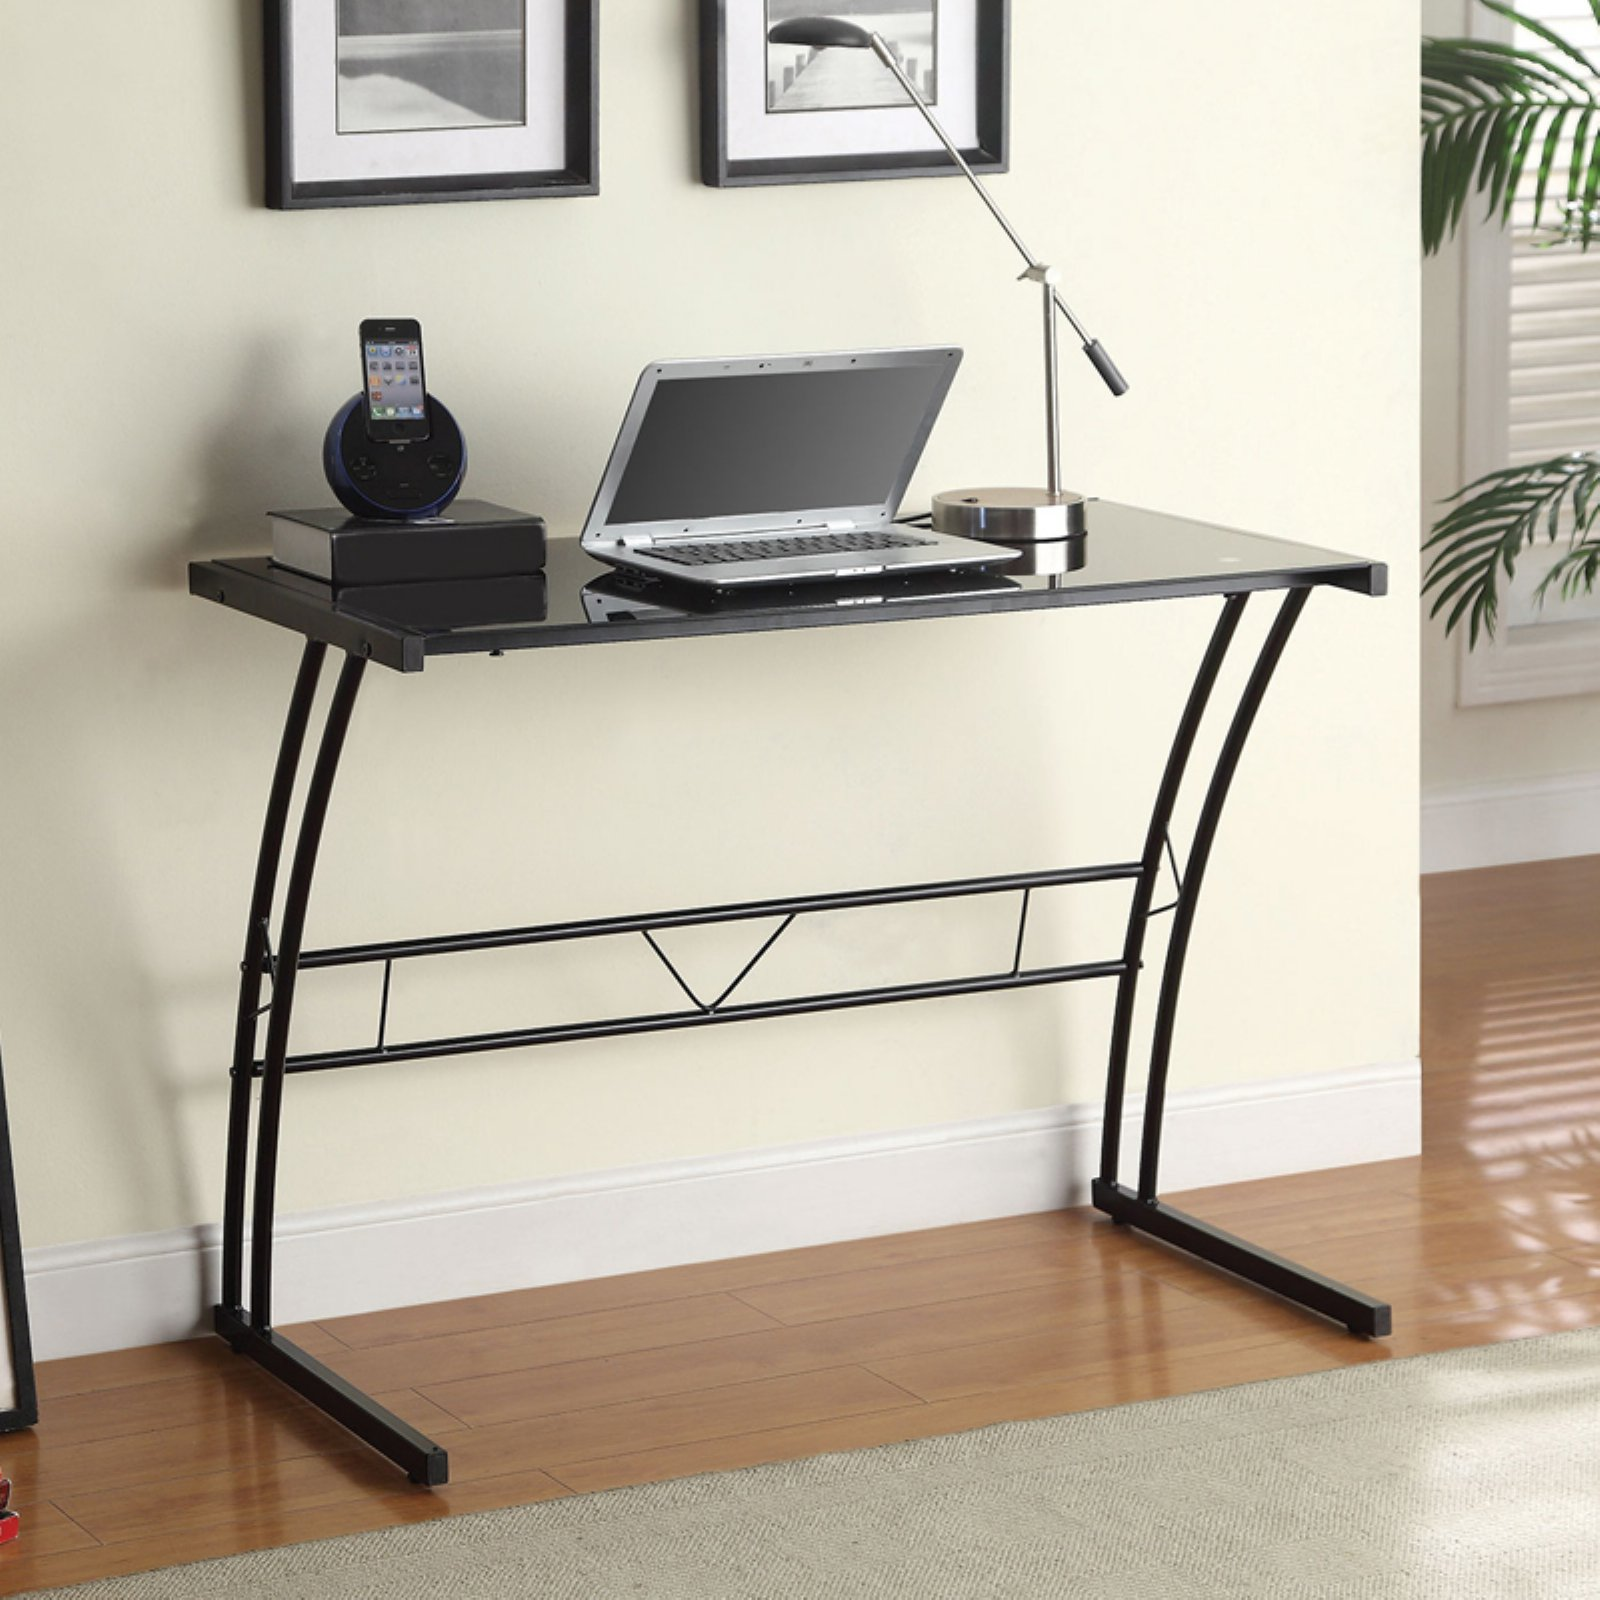 Coaster Furniture Writing Desk with Black Glass Top